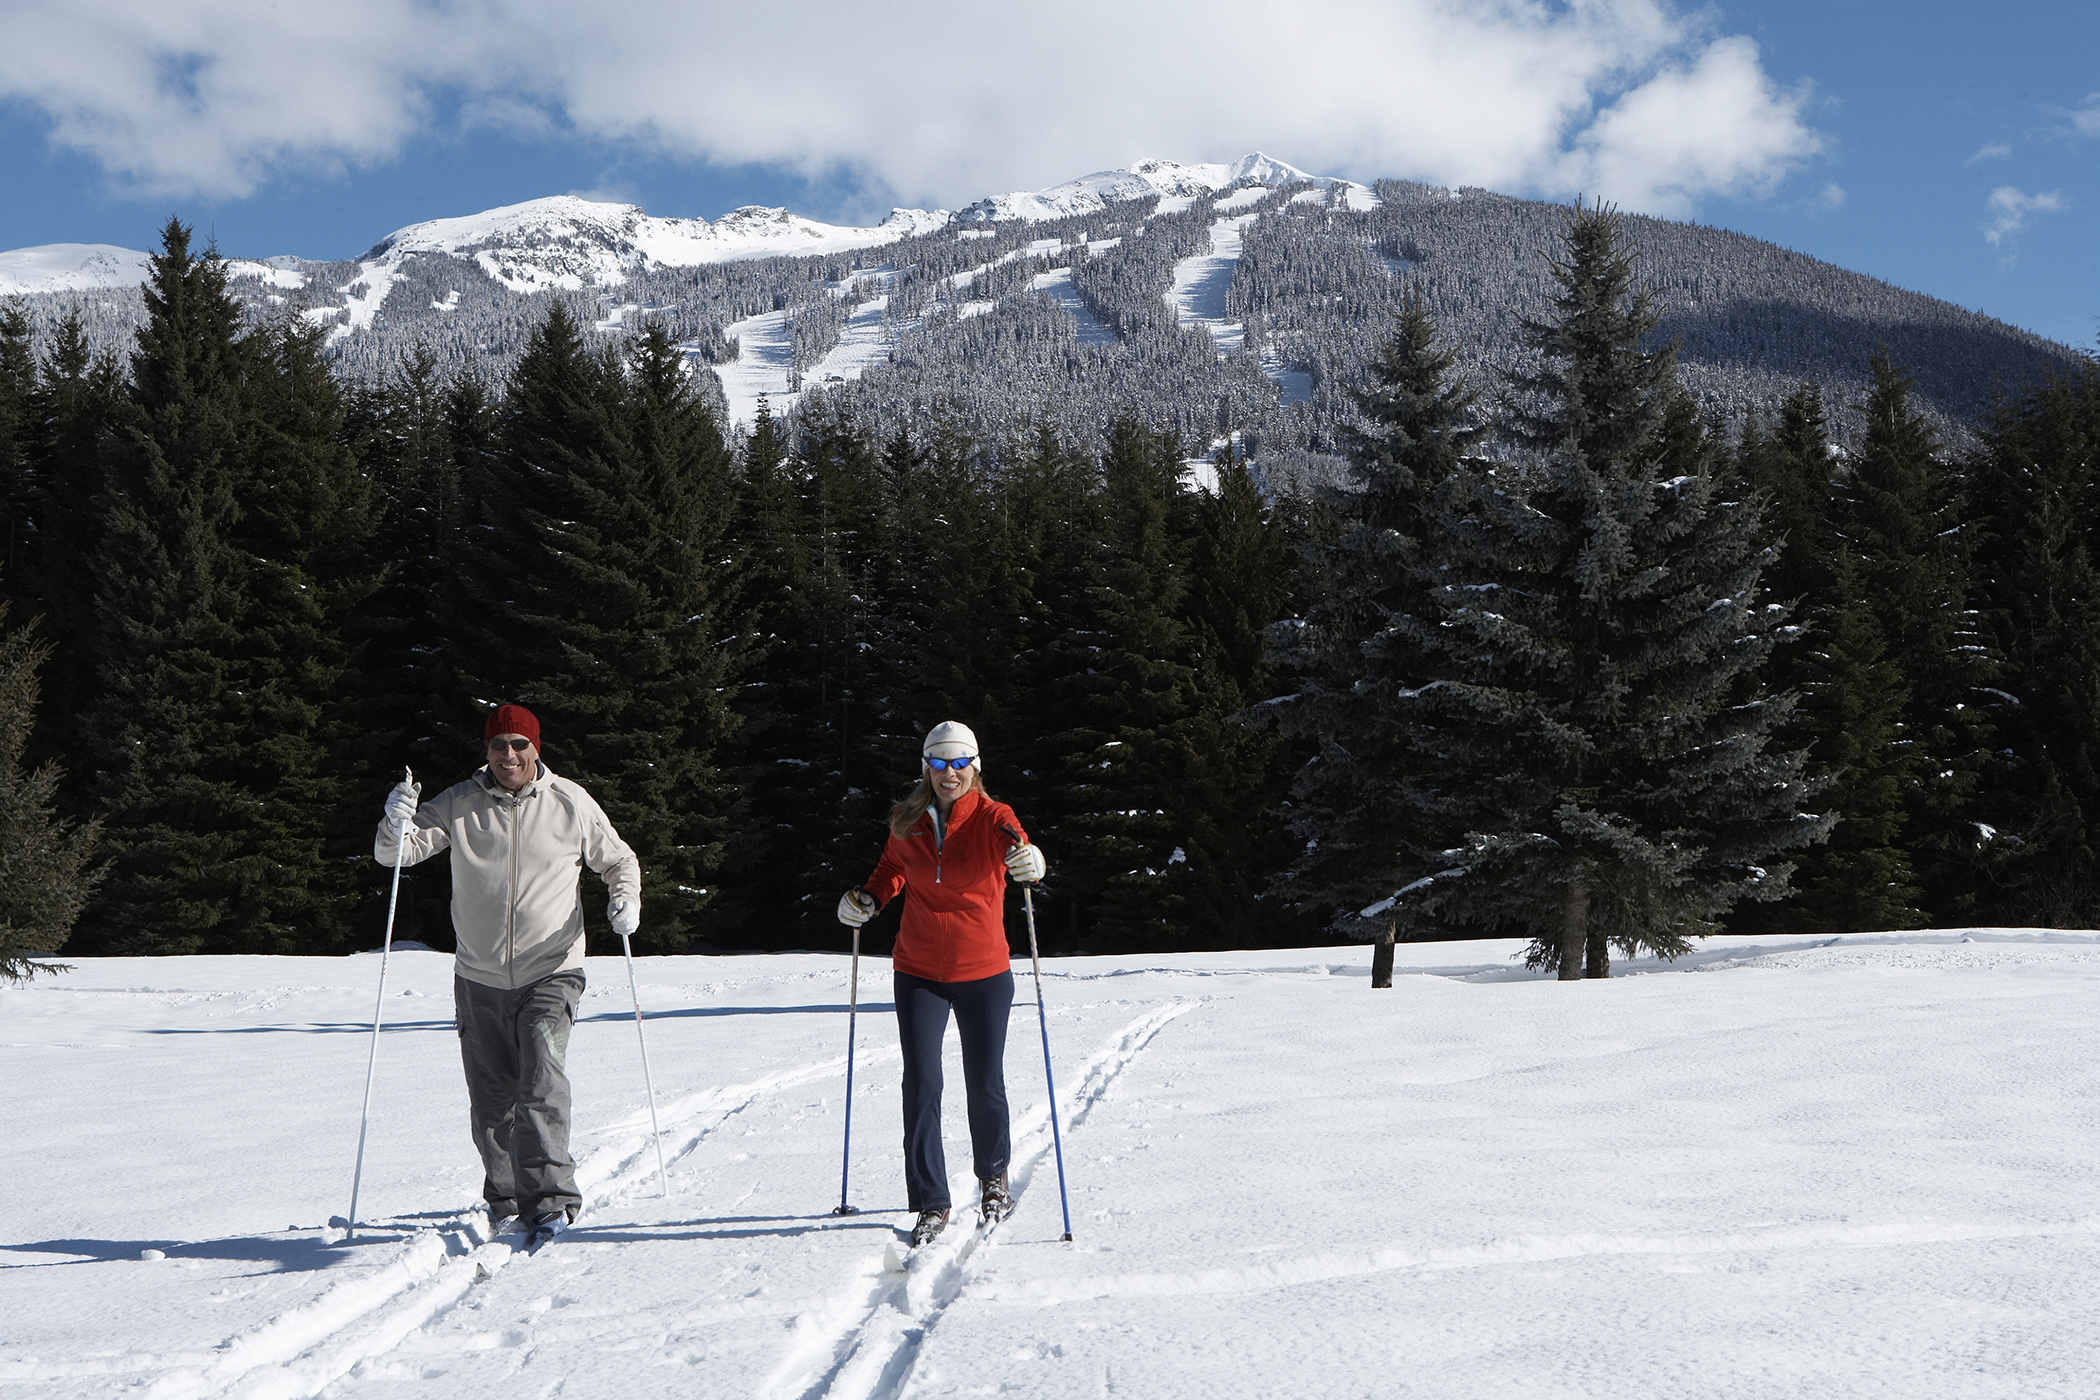 Cross-country skiers in Whistler, B.C.